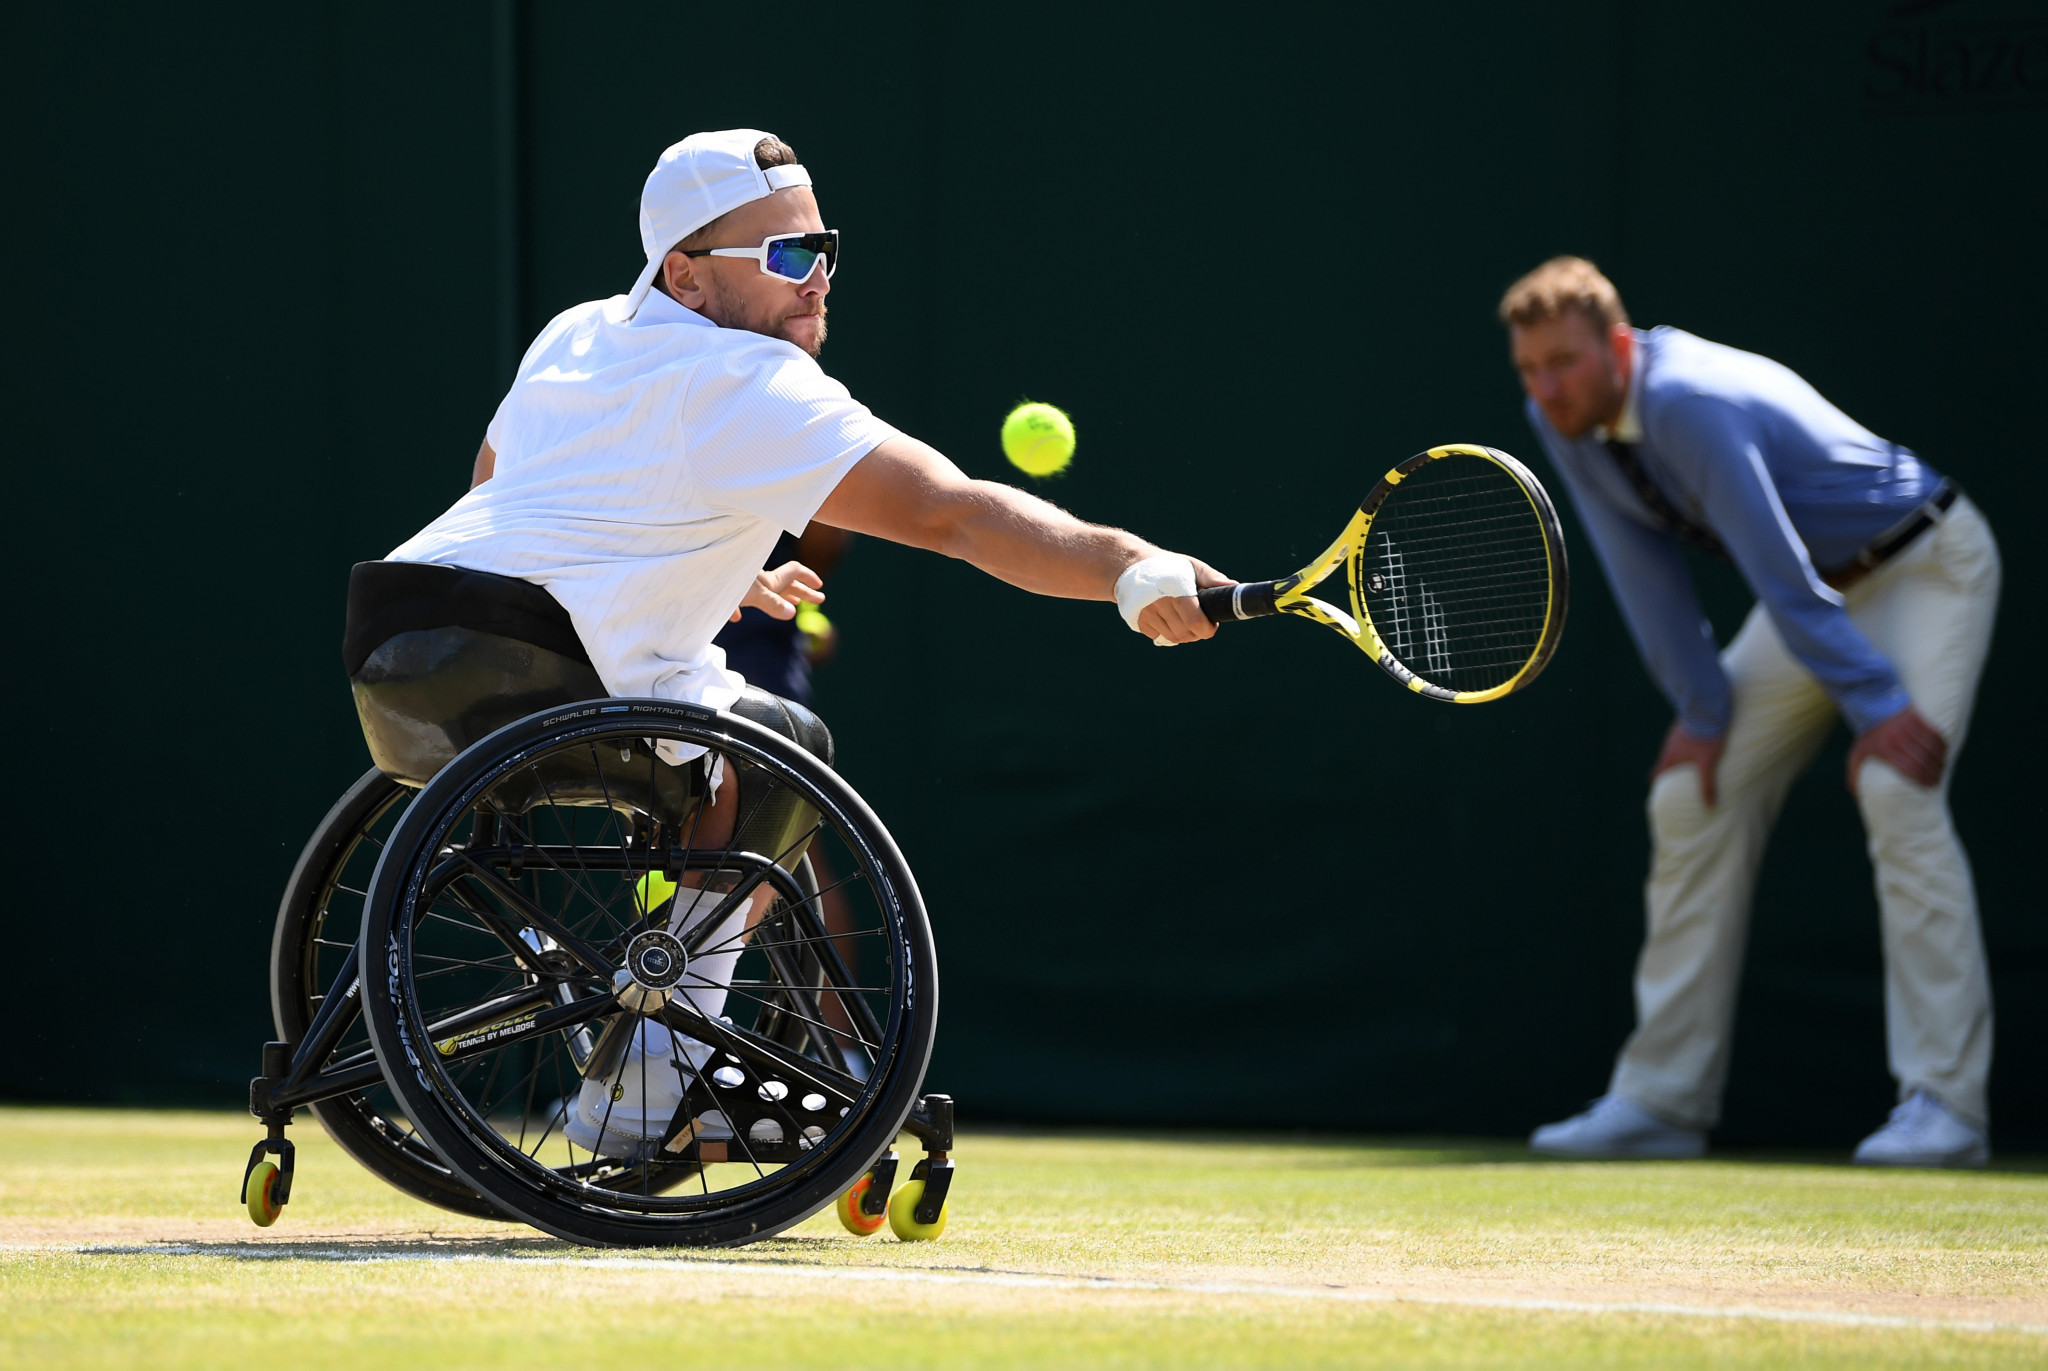 Alcott and Lapthorne through to final as quad wheelchair tennis makes competitive debut at Wimbledon